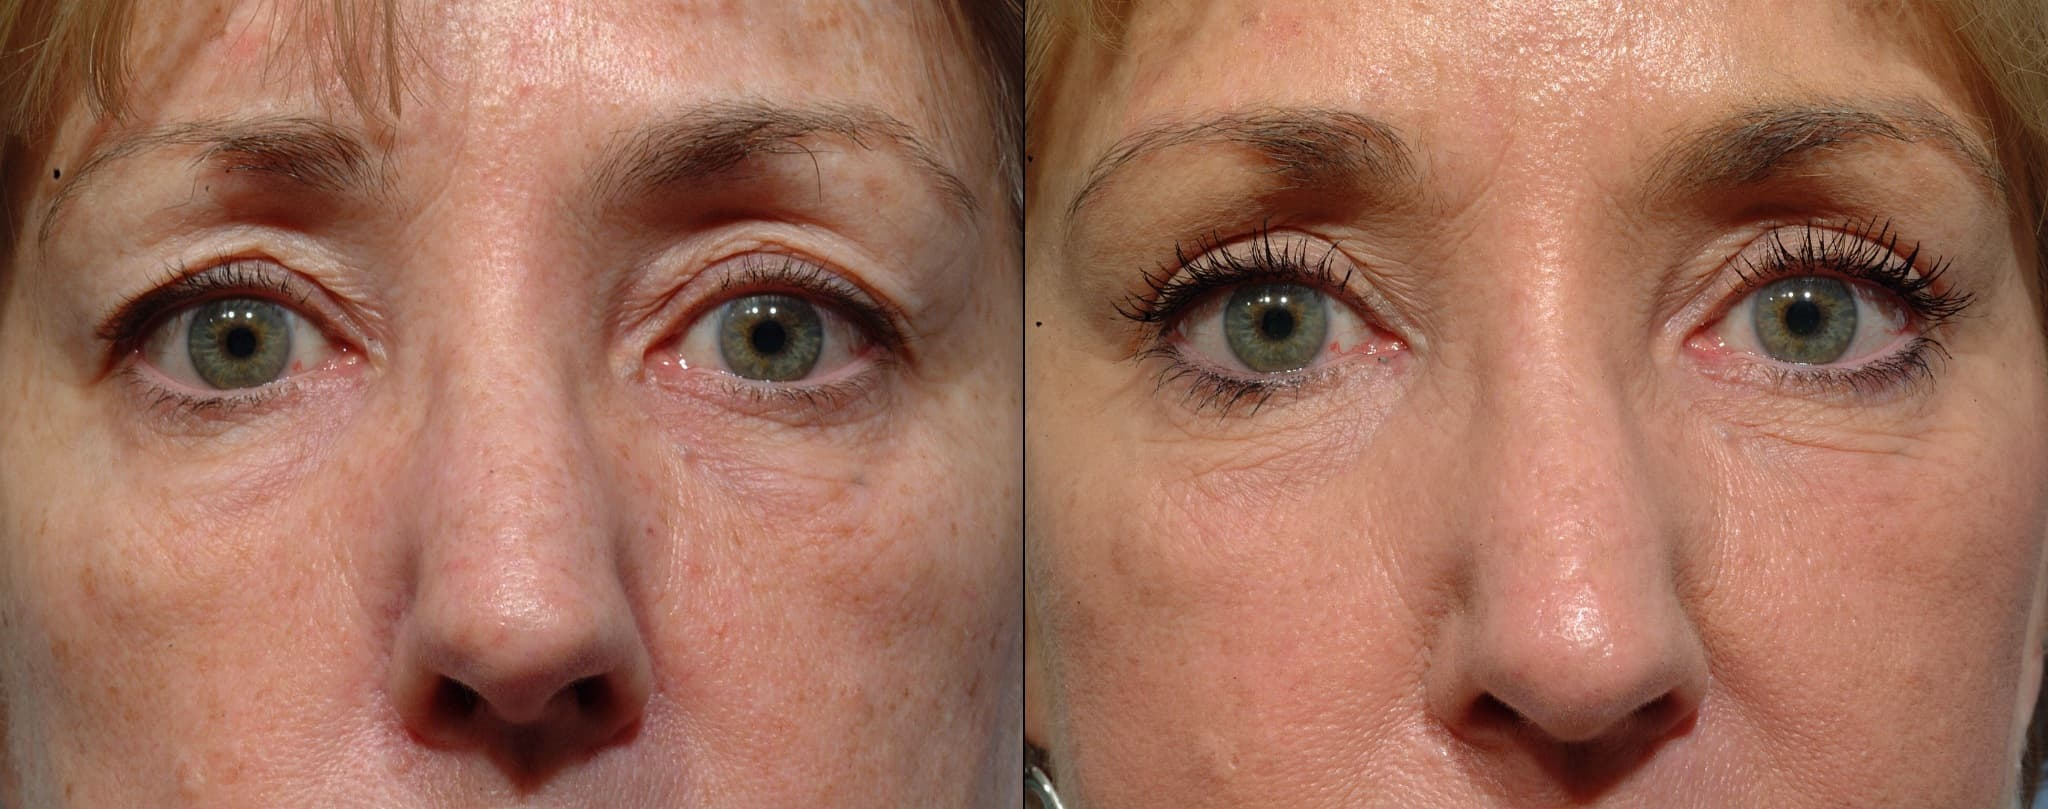 Eyelid Plastic Surgery Before And After photo - 1